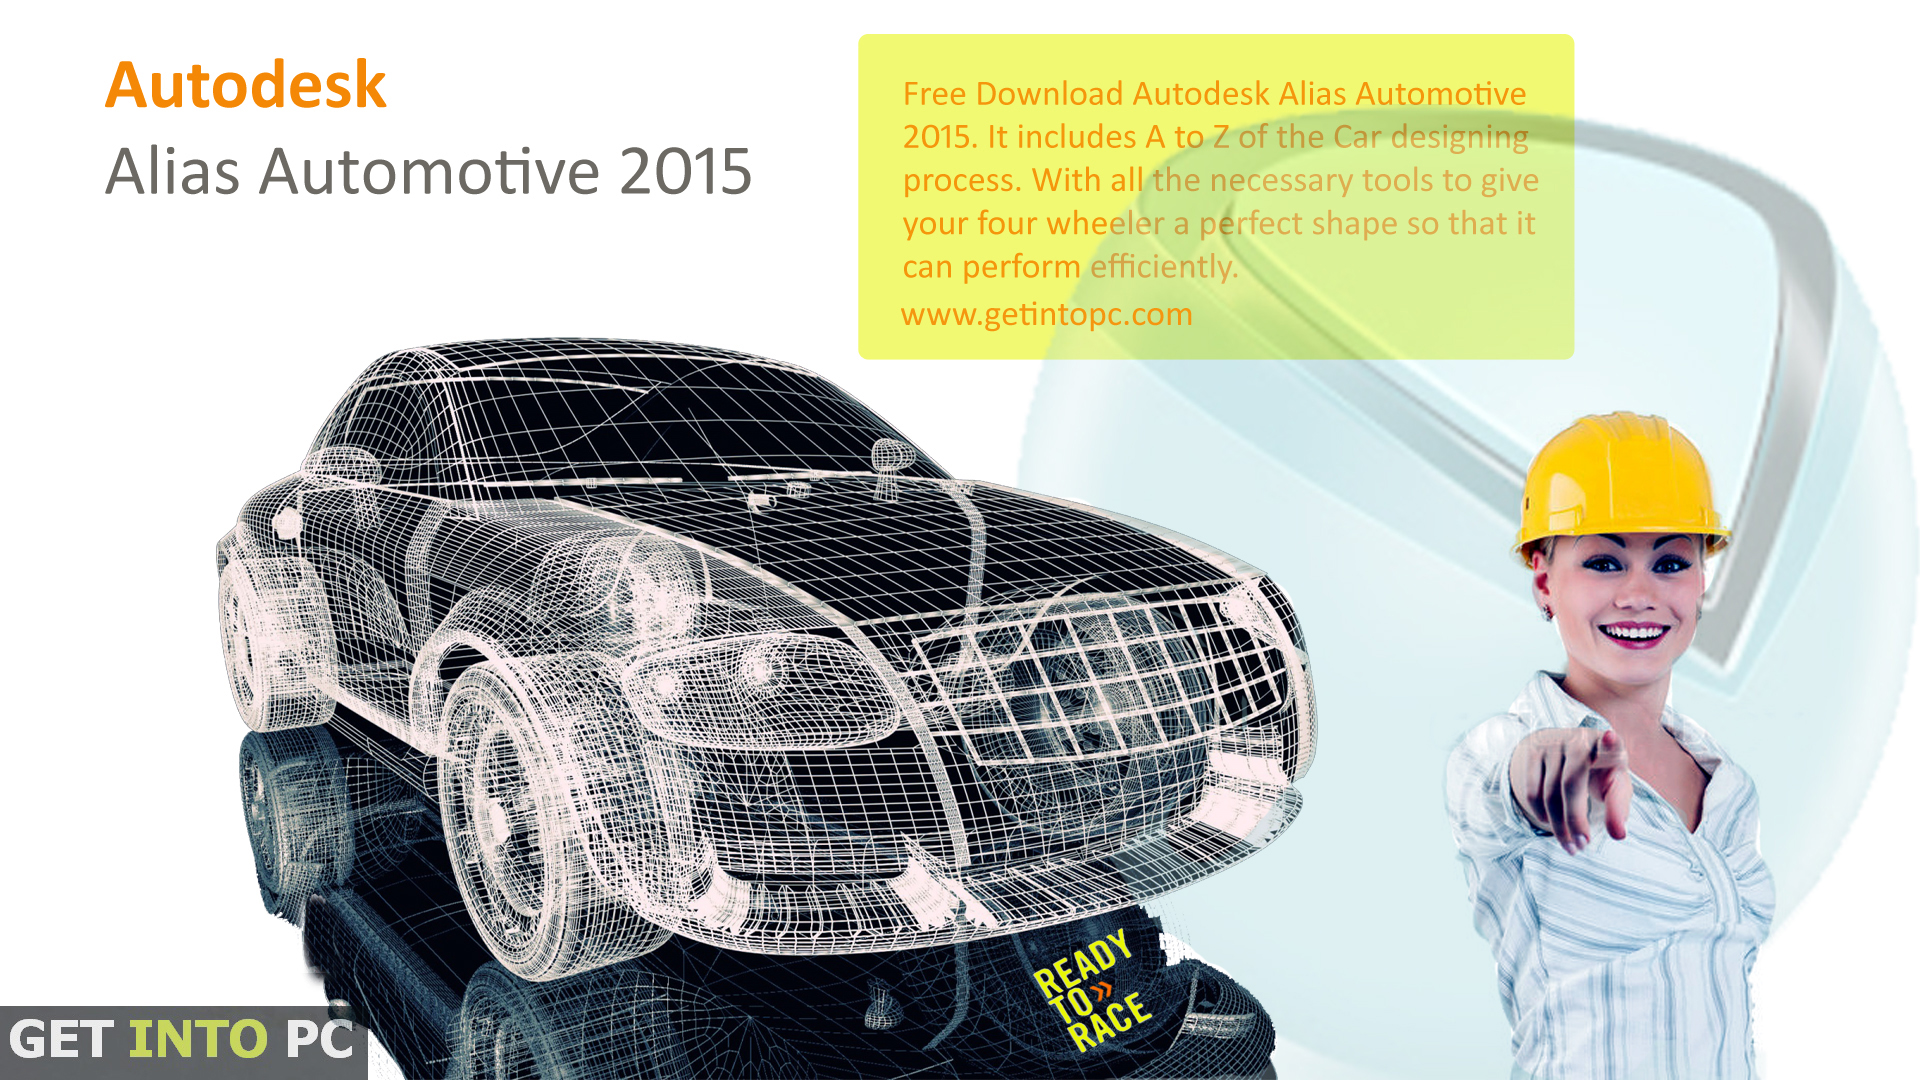 Autodesk Alias Automotive Free Download